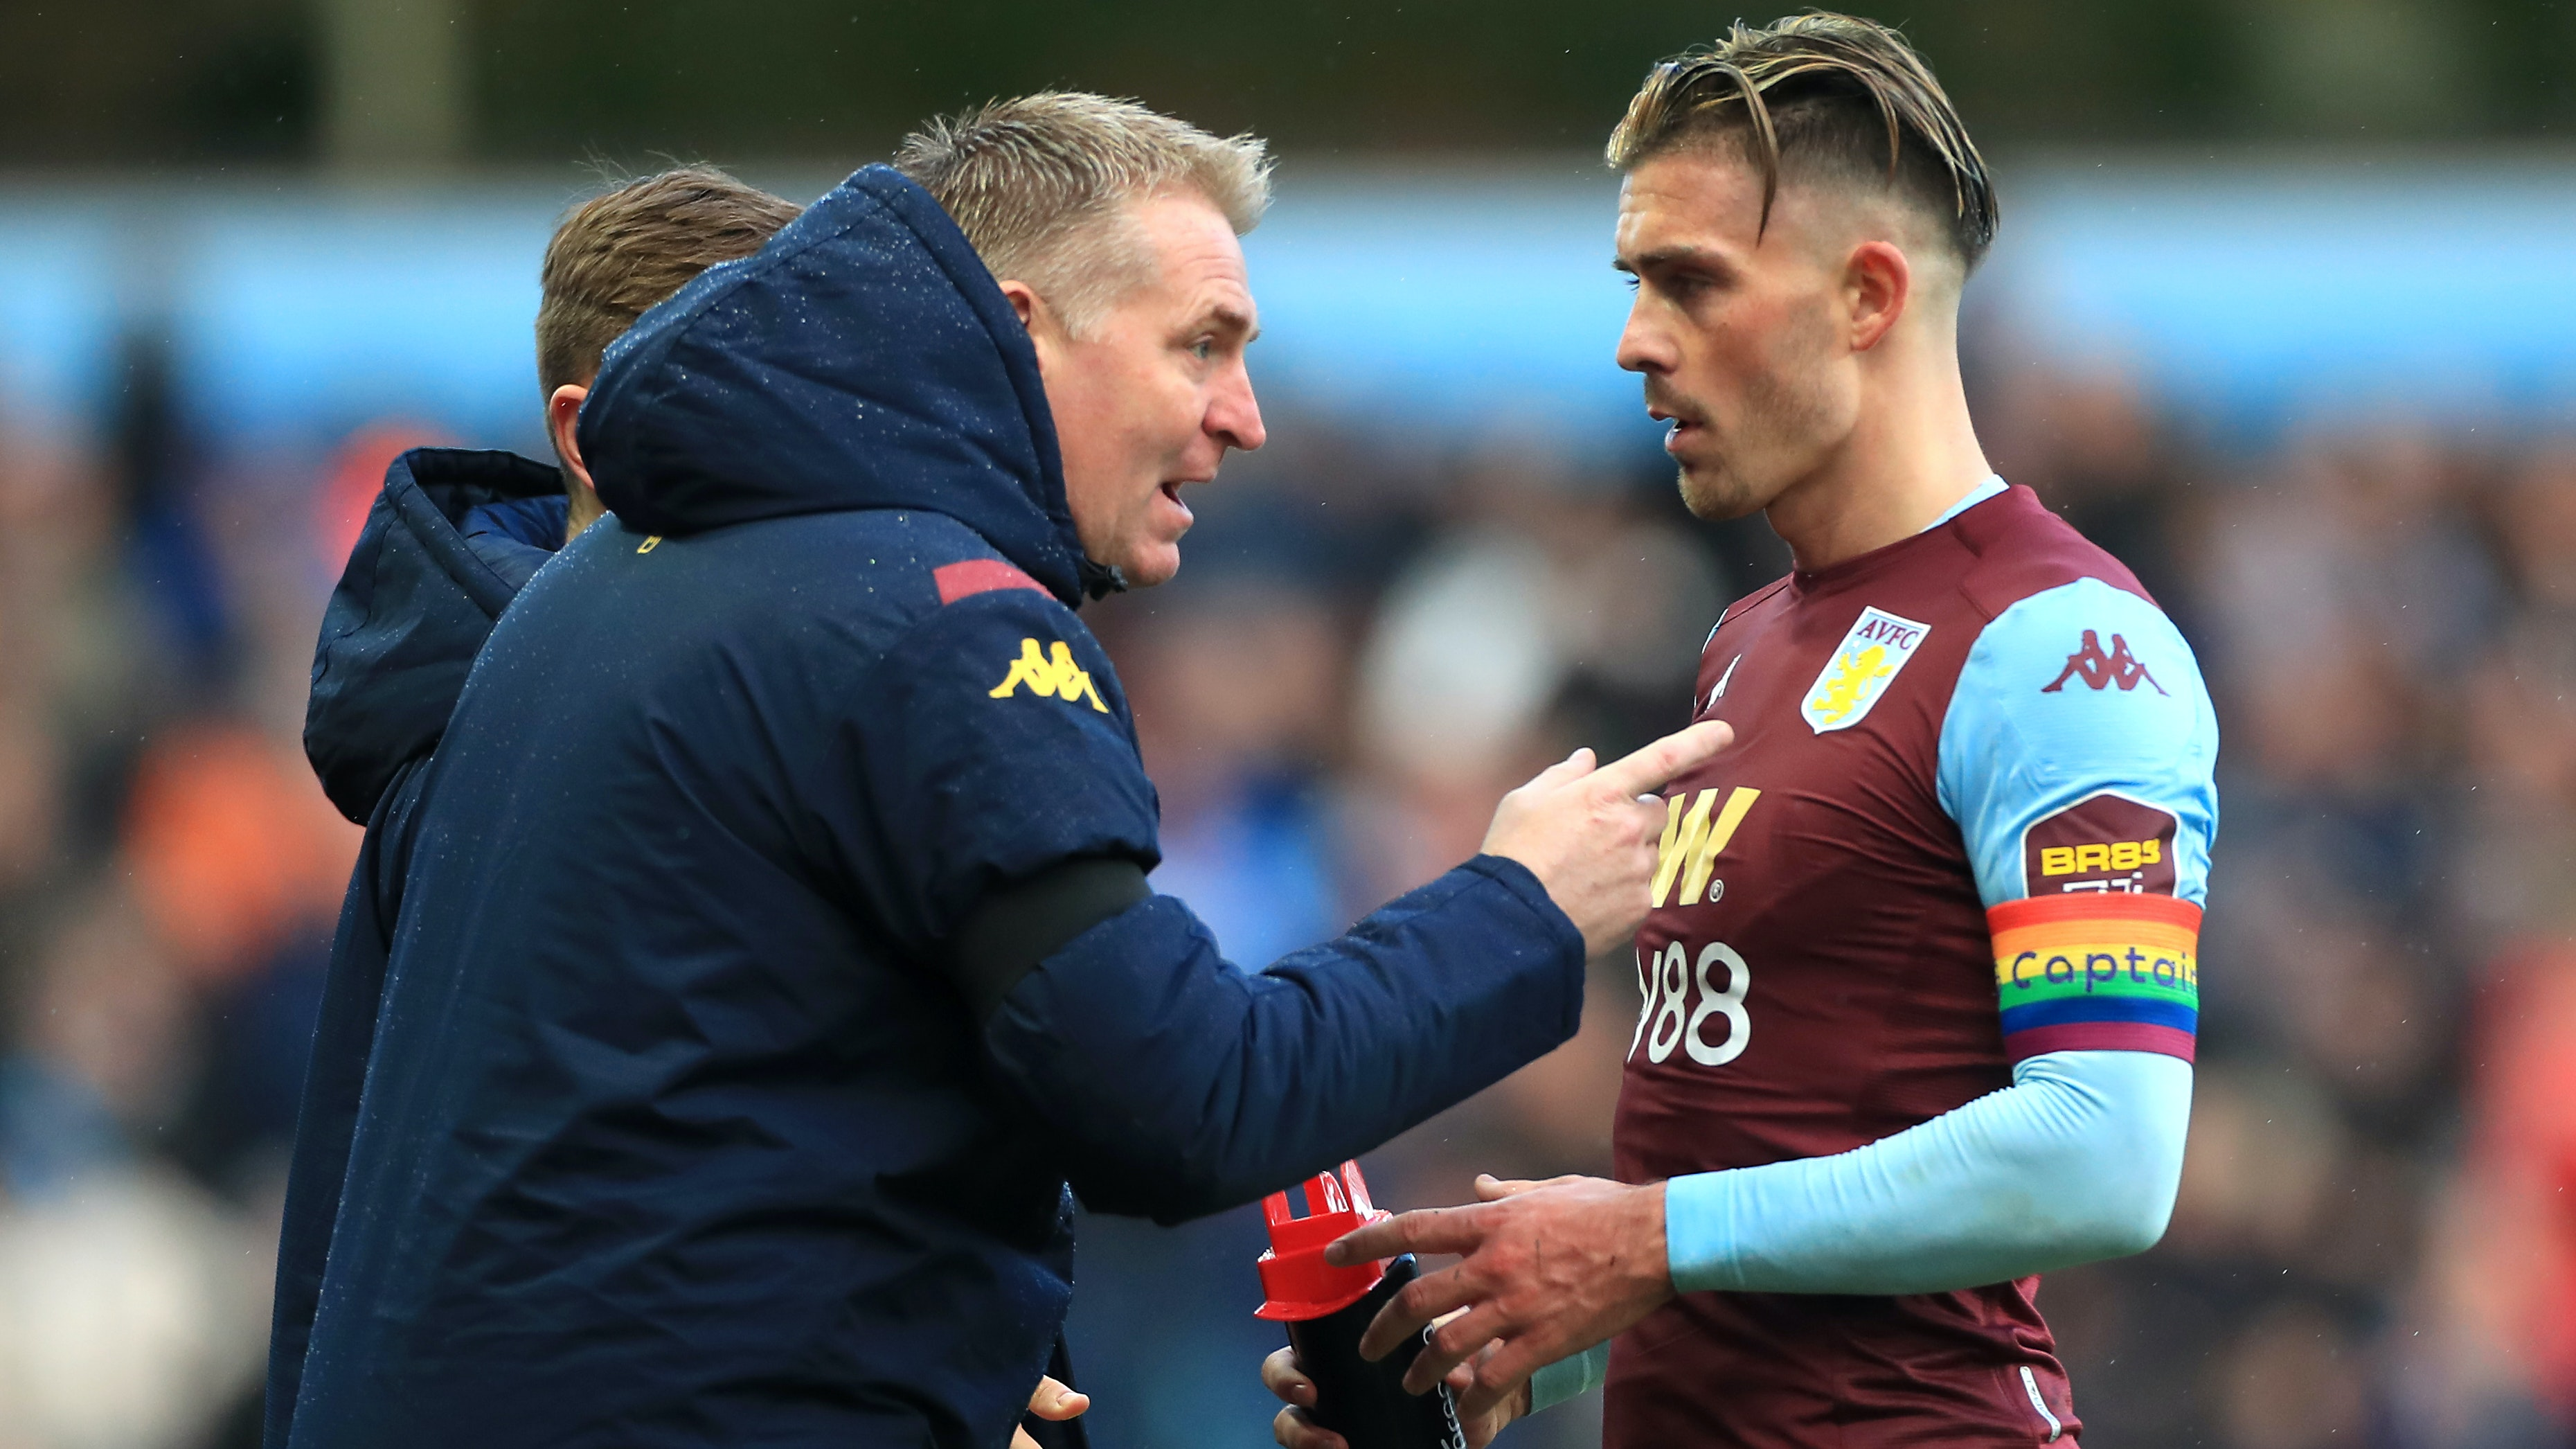 Aston Villa up to sixth after comfortable win over Crystal Palace